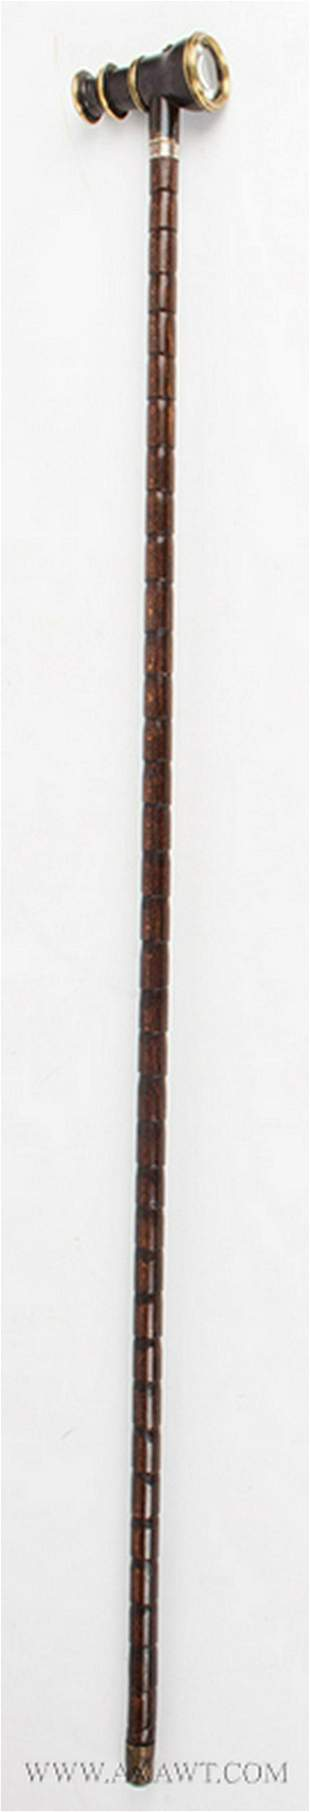 Walking Stick with Spyglass Handle